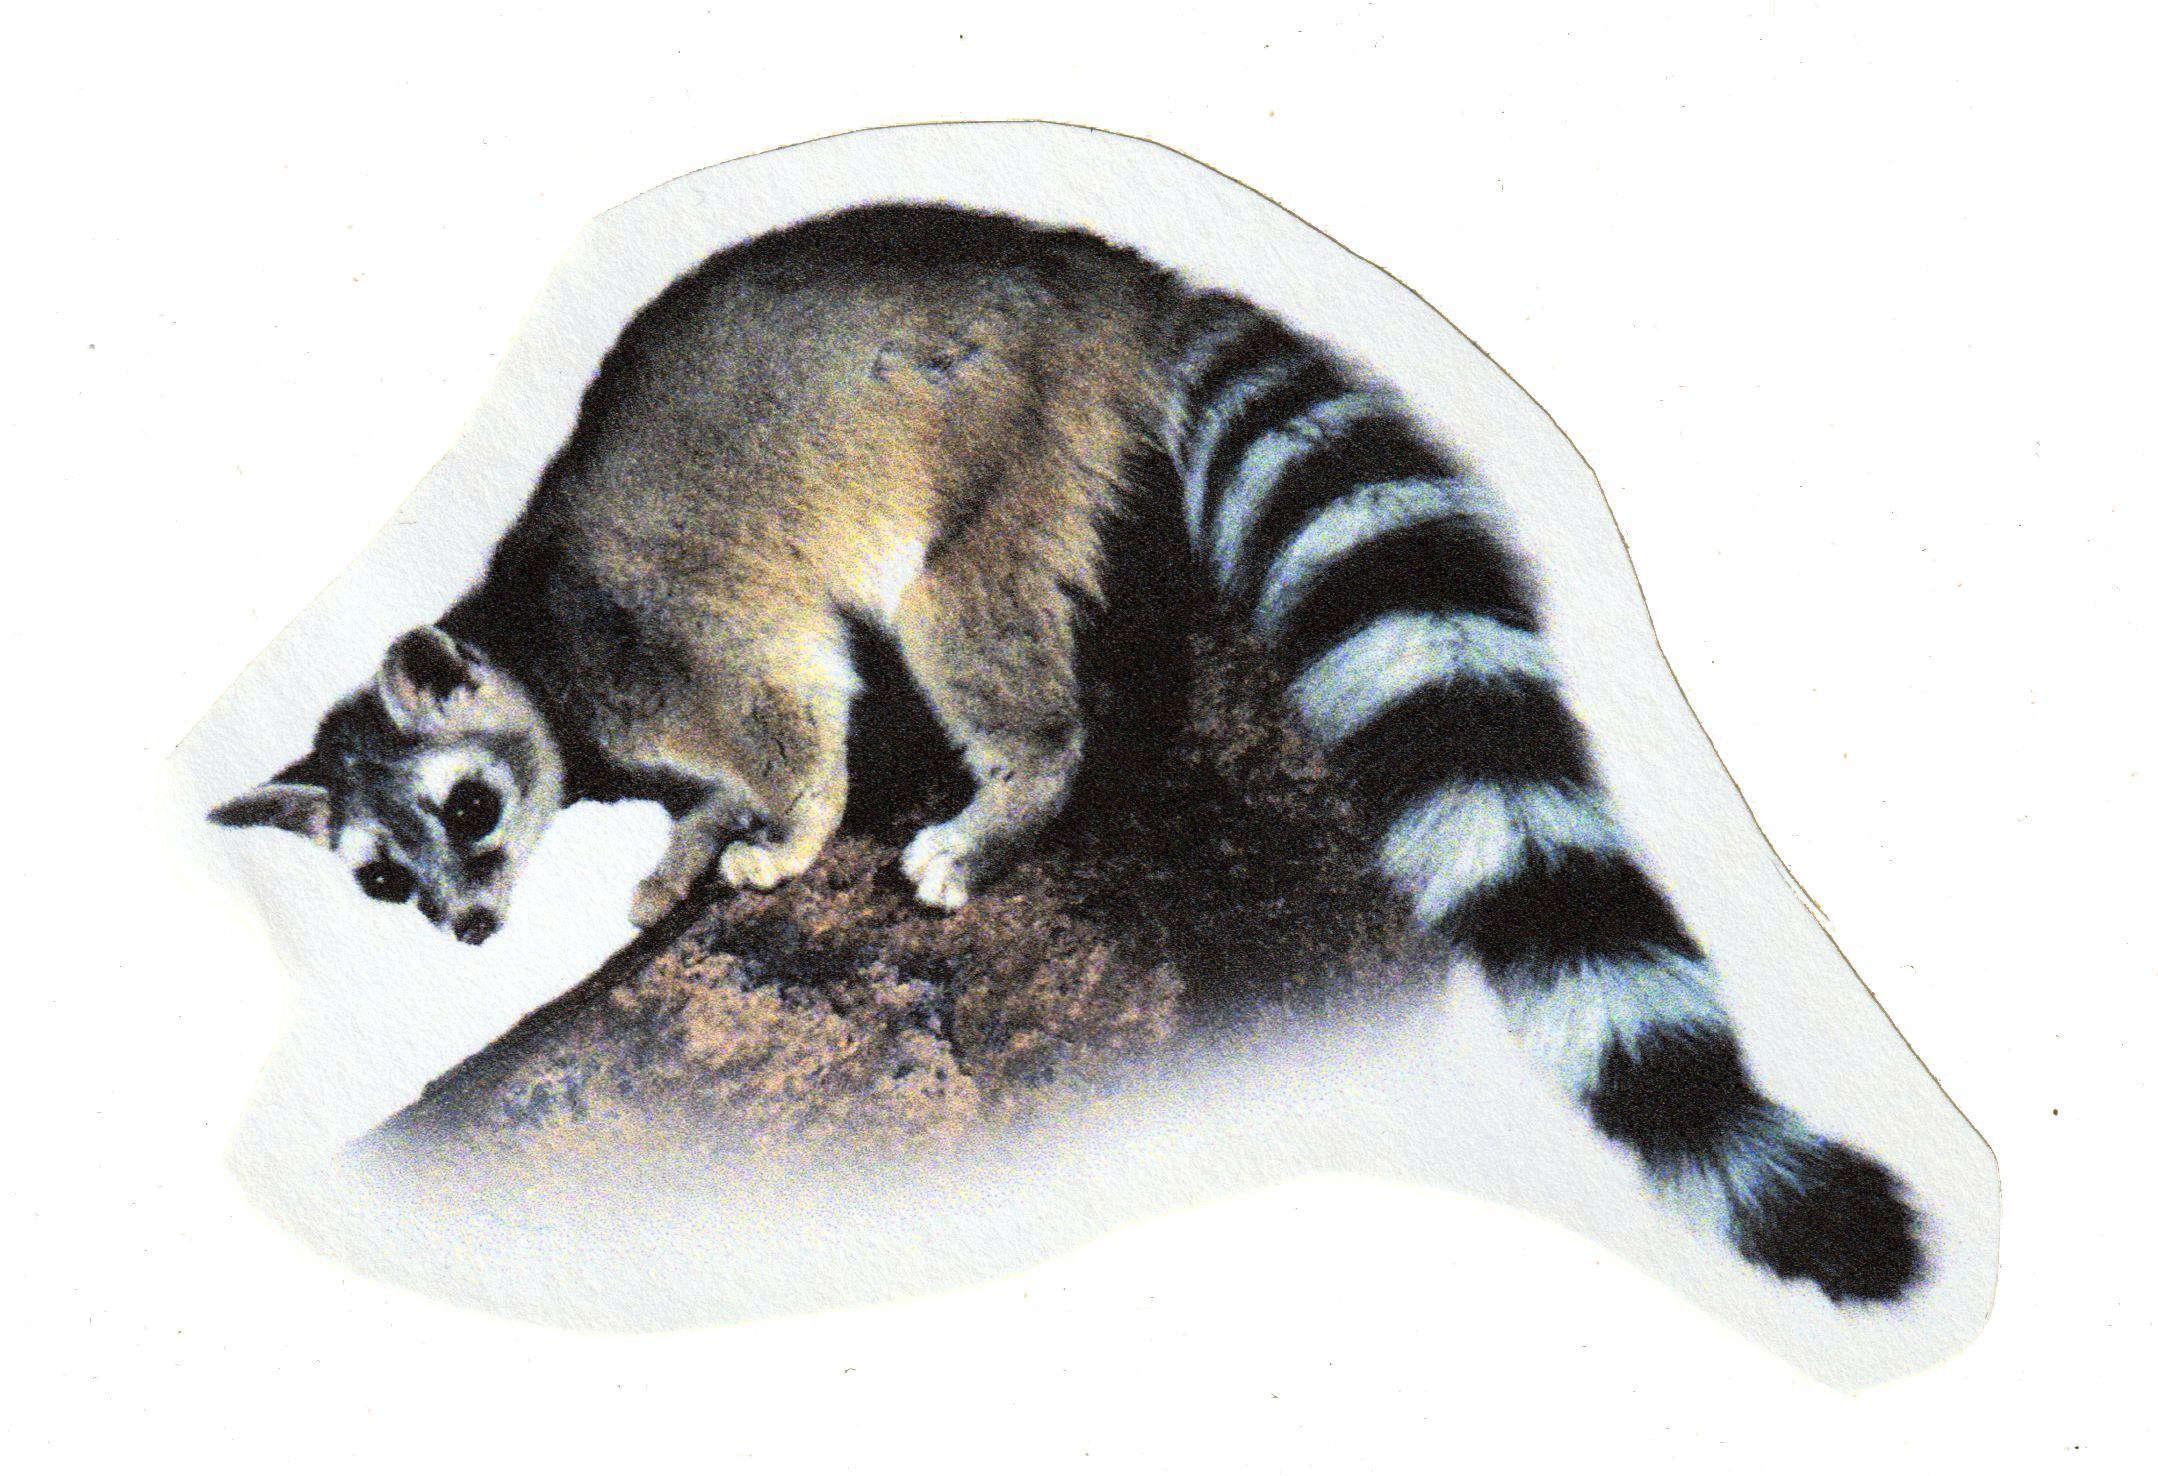 The ringtail (or miner's cat) is not actually a cat